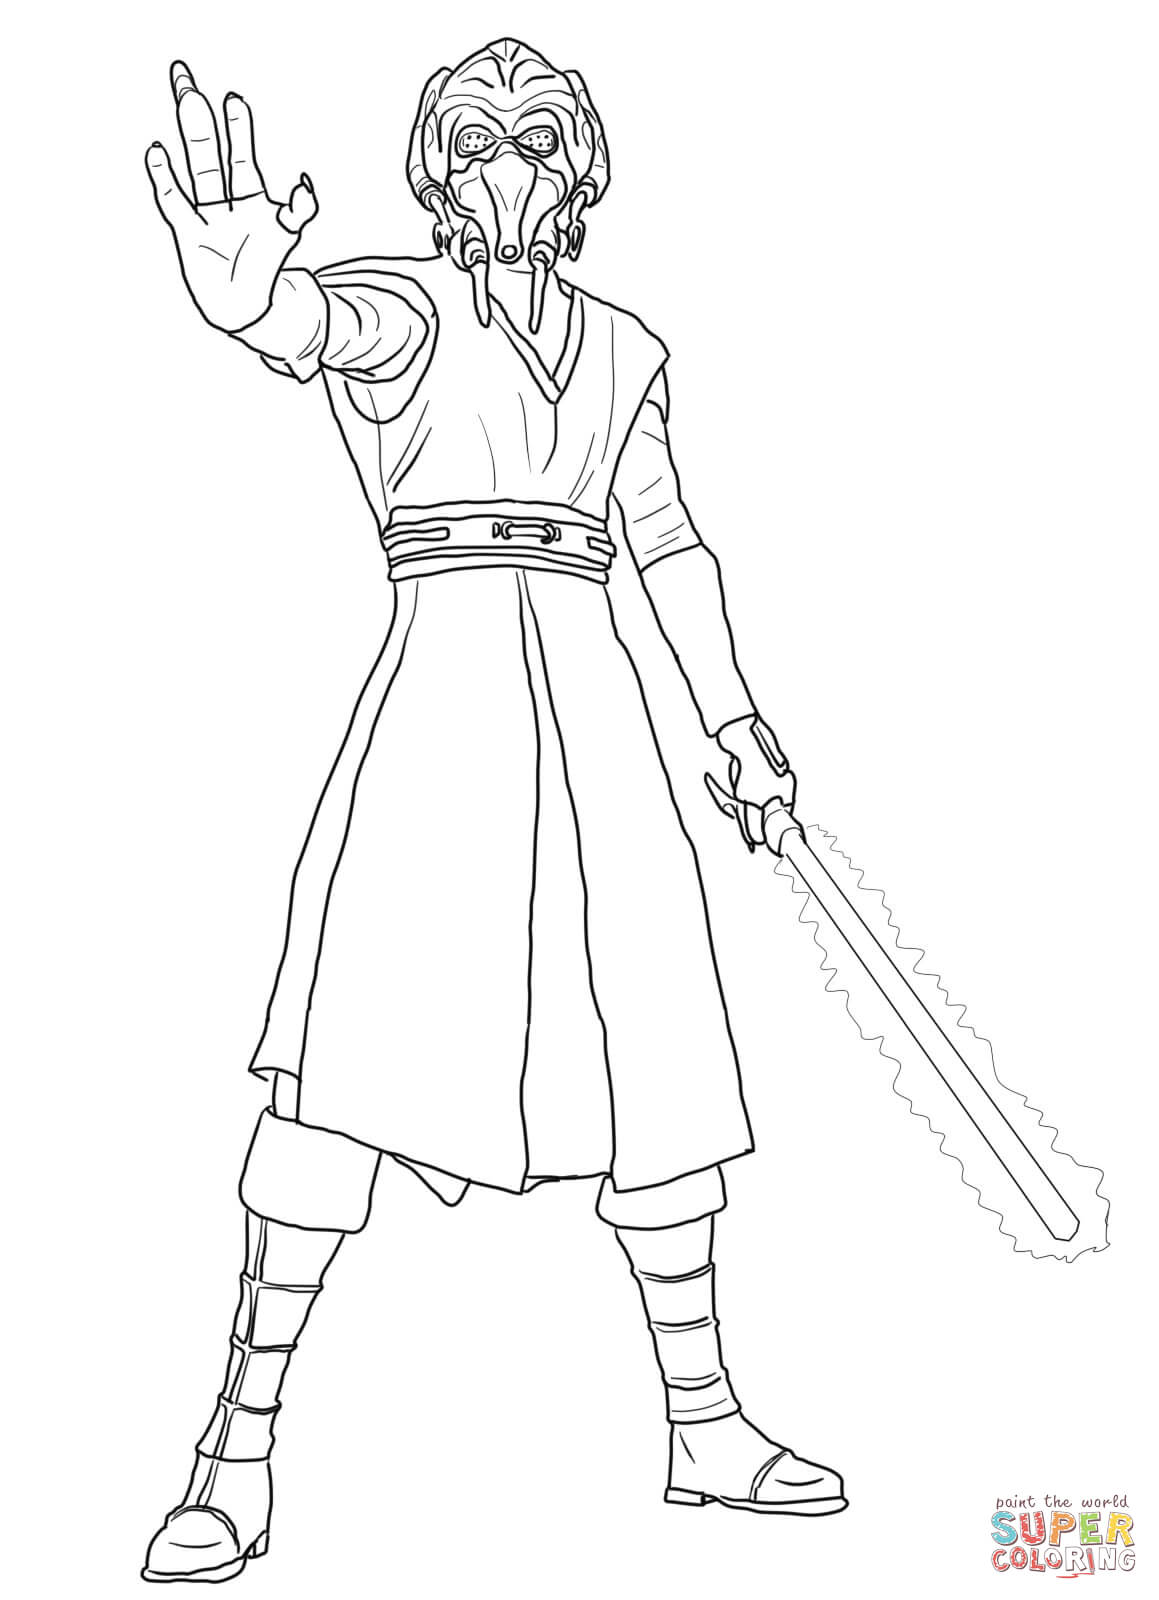 Star Wars Clone Wars Drawing at GetDrawings.com | Free for personal ...